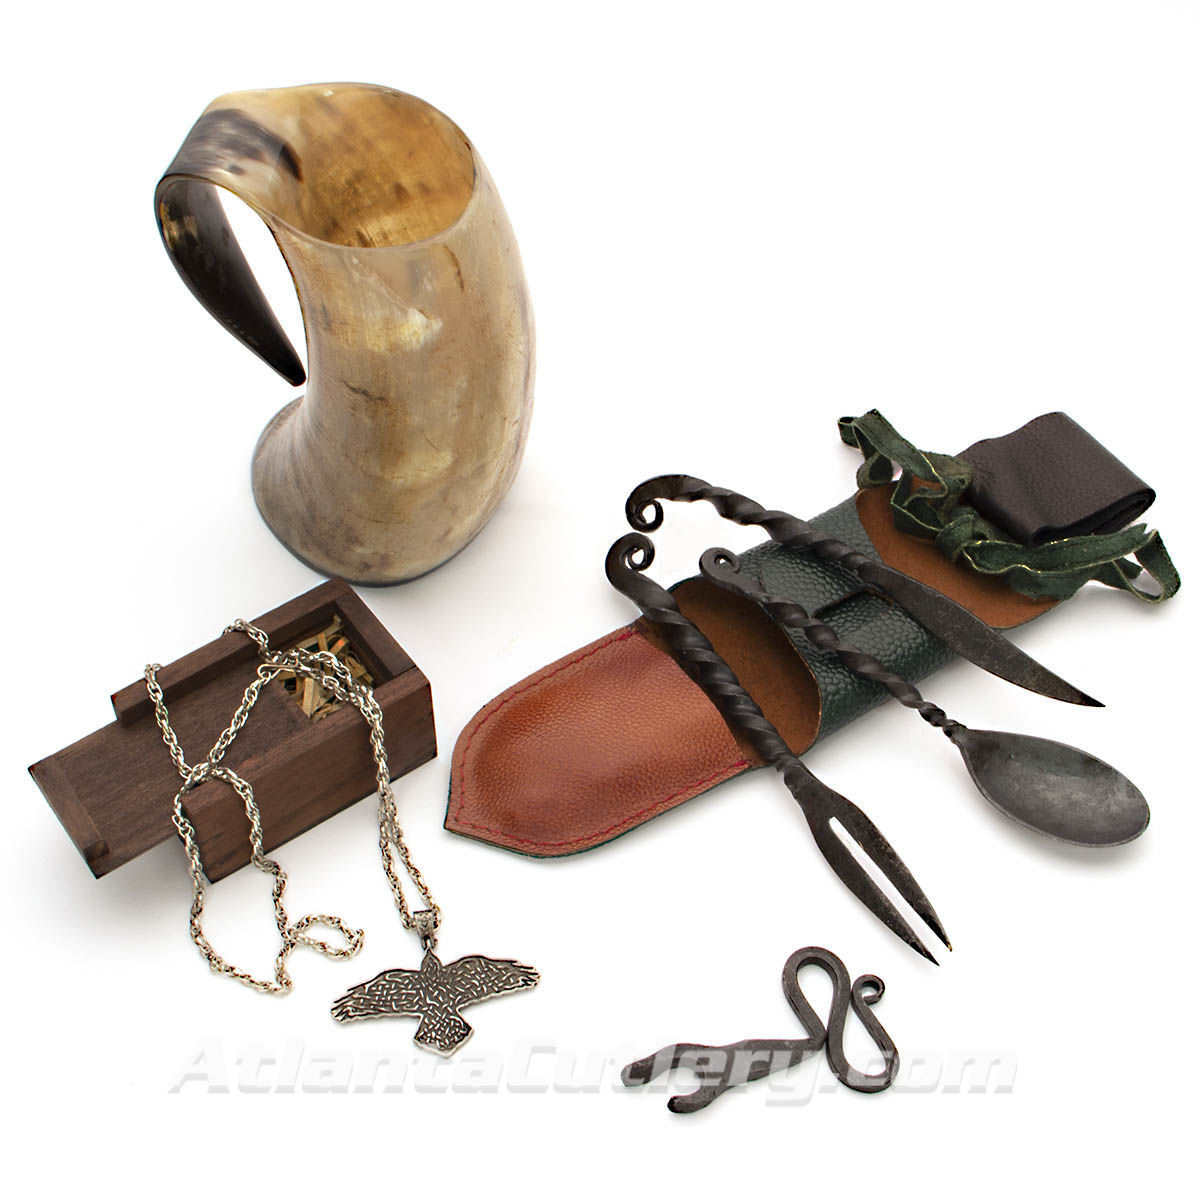 Viking Celebration Kit with Horn Tankard, Feasting Utensils with Leather Belt Pouch, Iron Bottle Opener and Pewter Raven Pendant